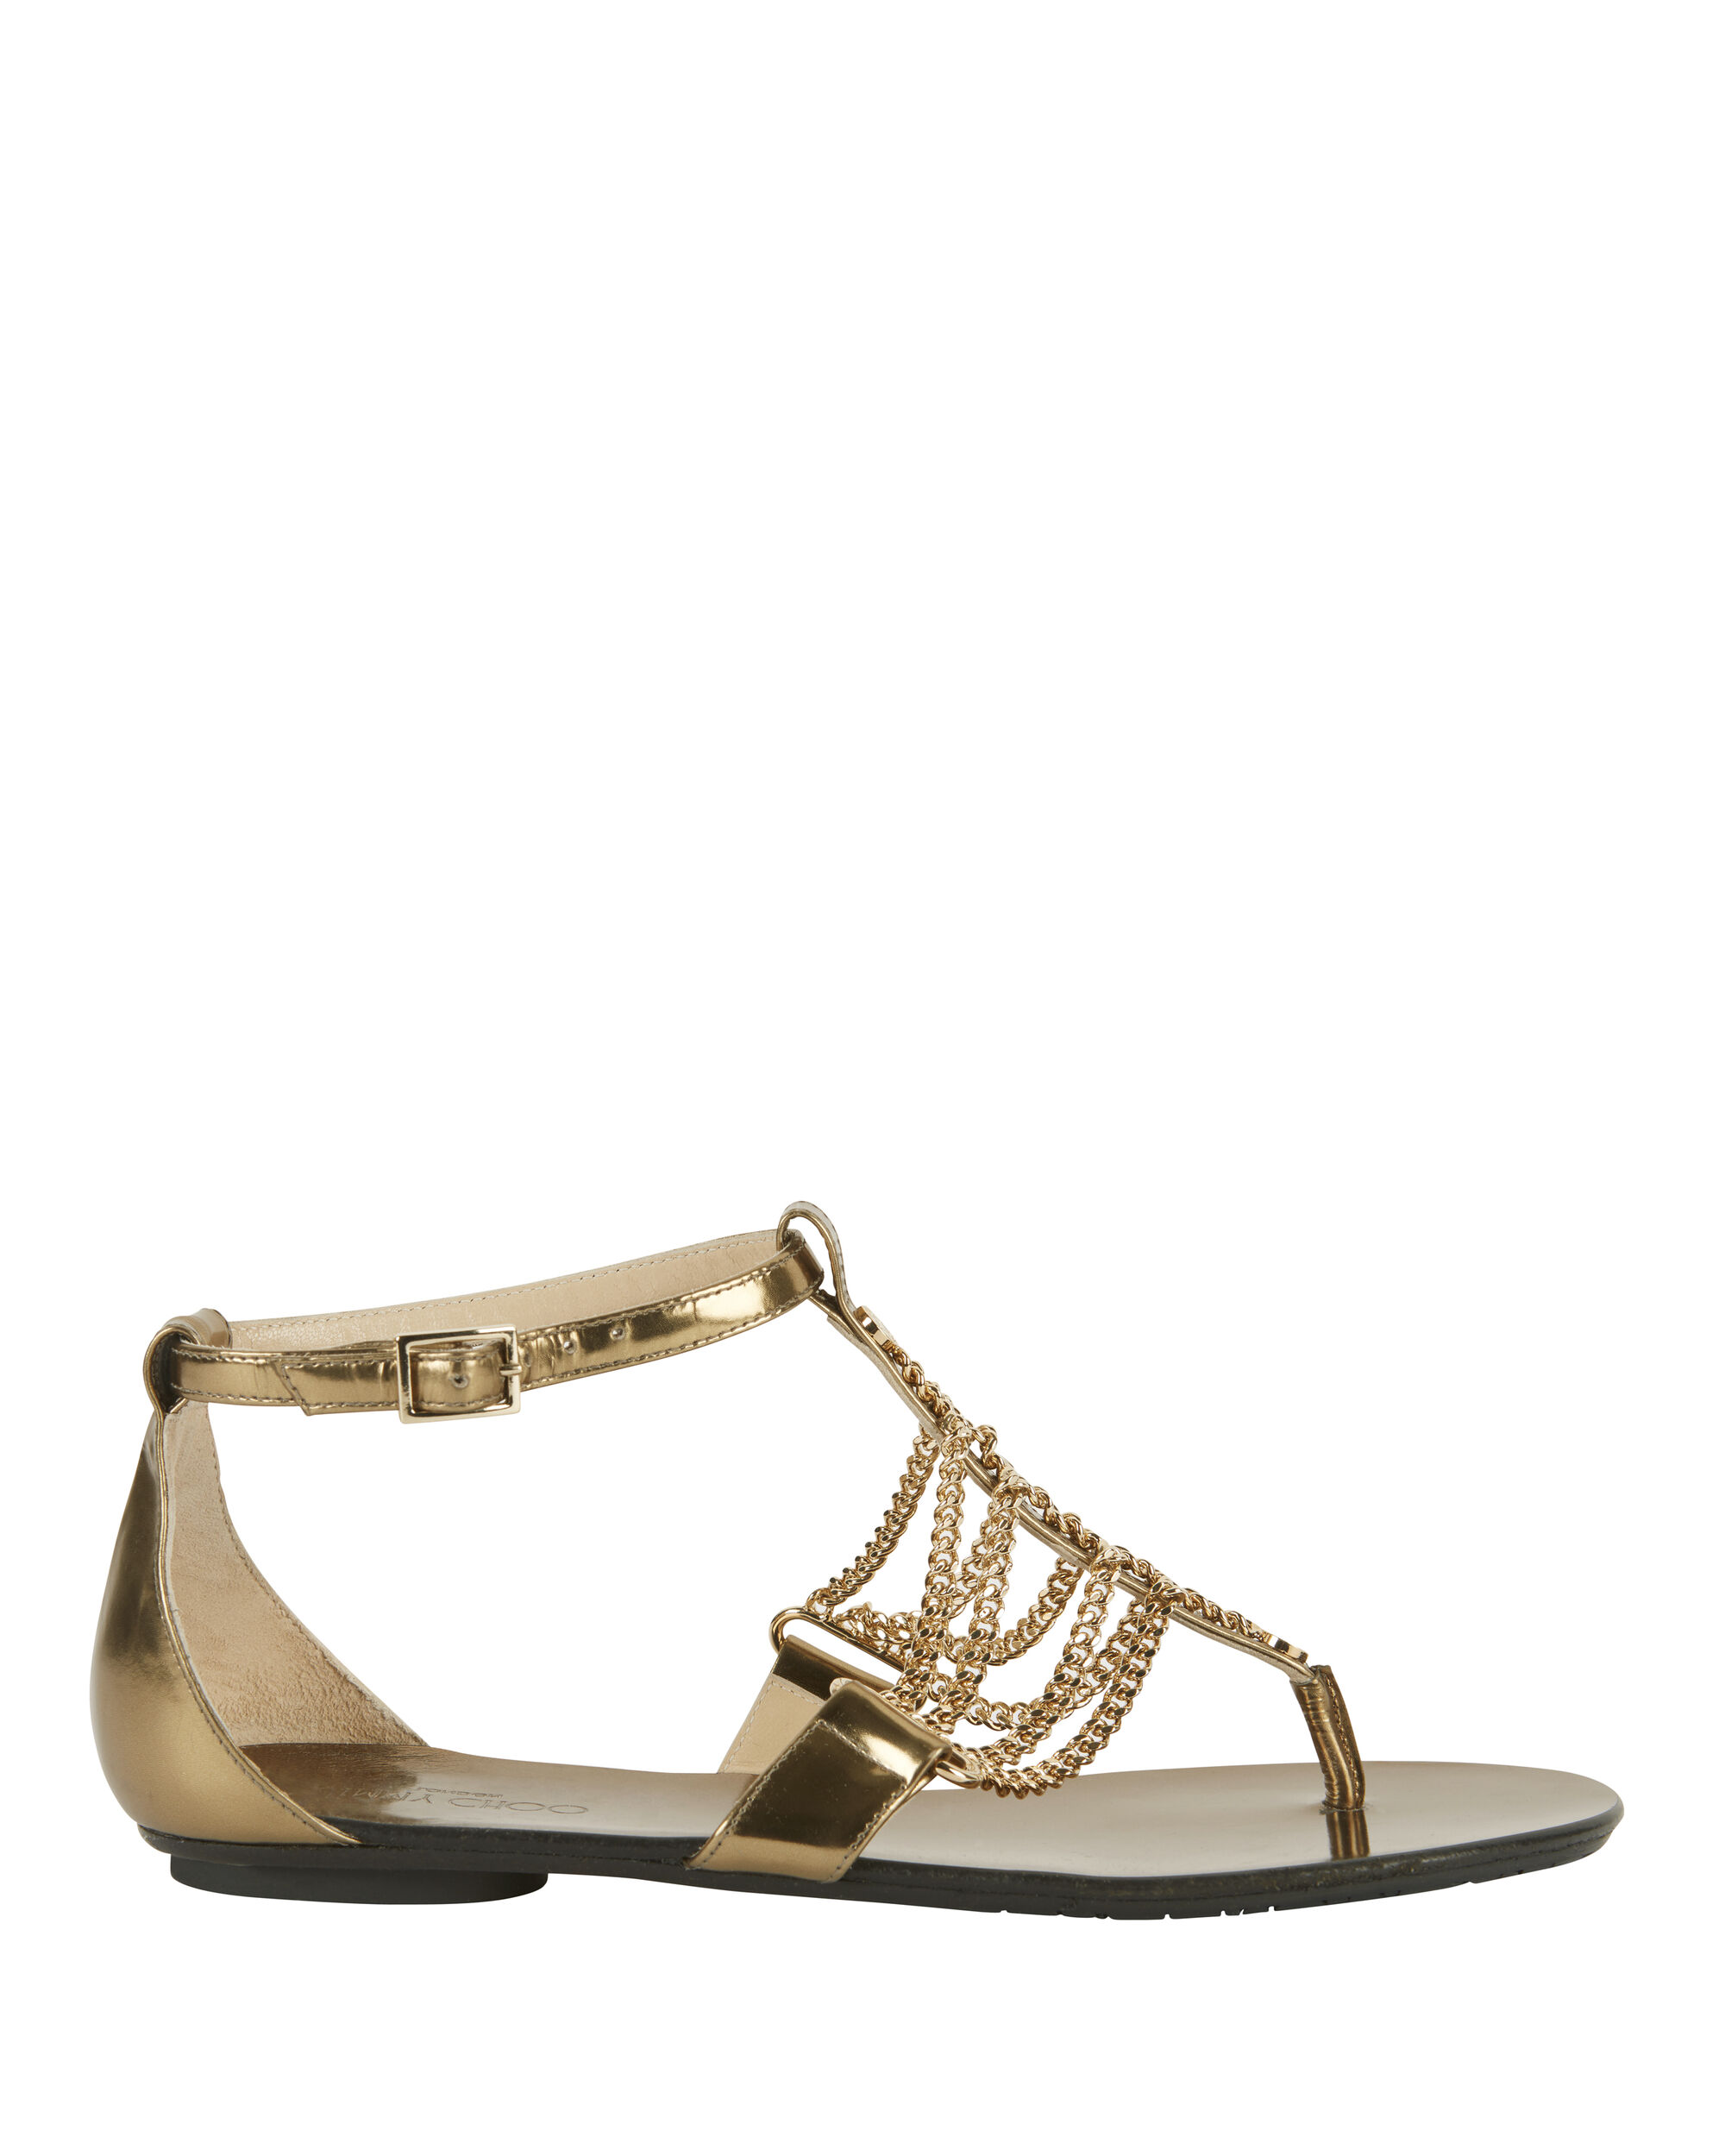 Wallace Chain Detail Metallic Leather Flat Sandals, GOLD, hi-res